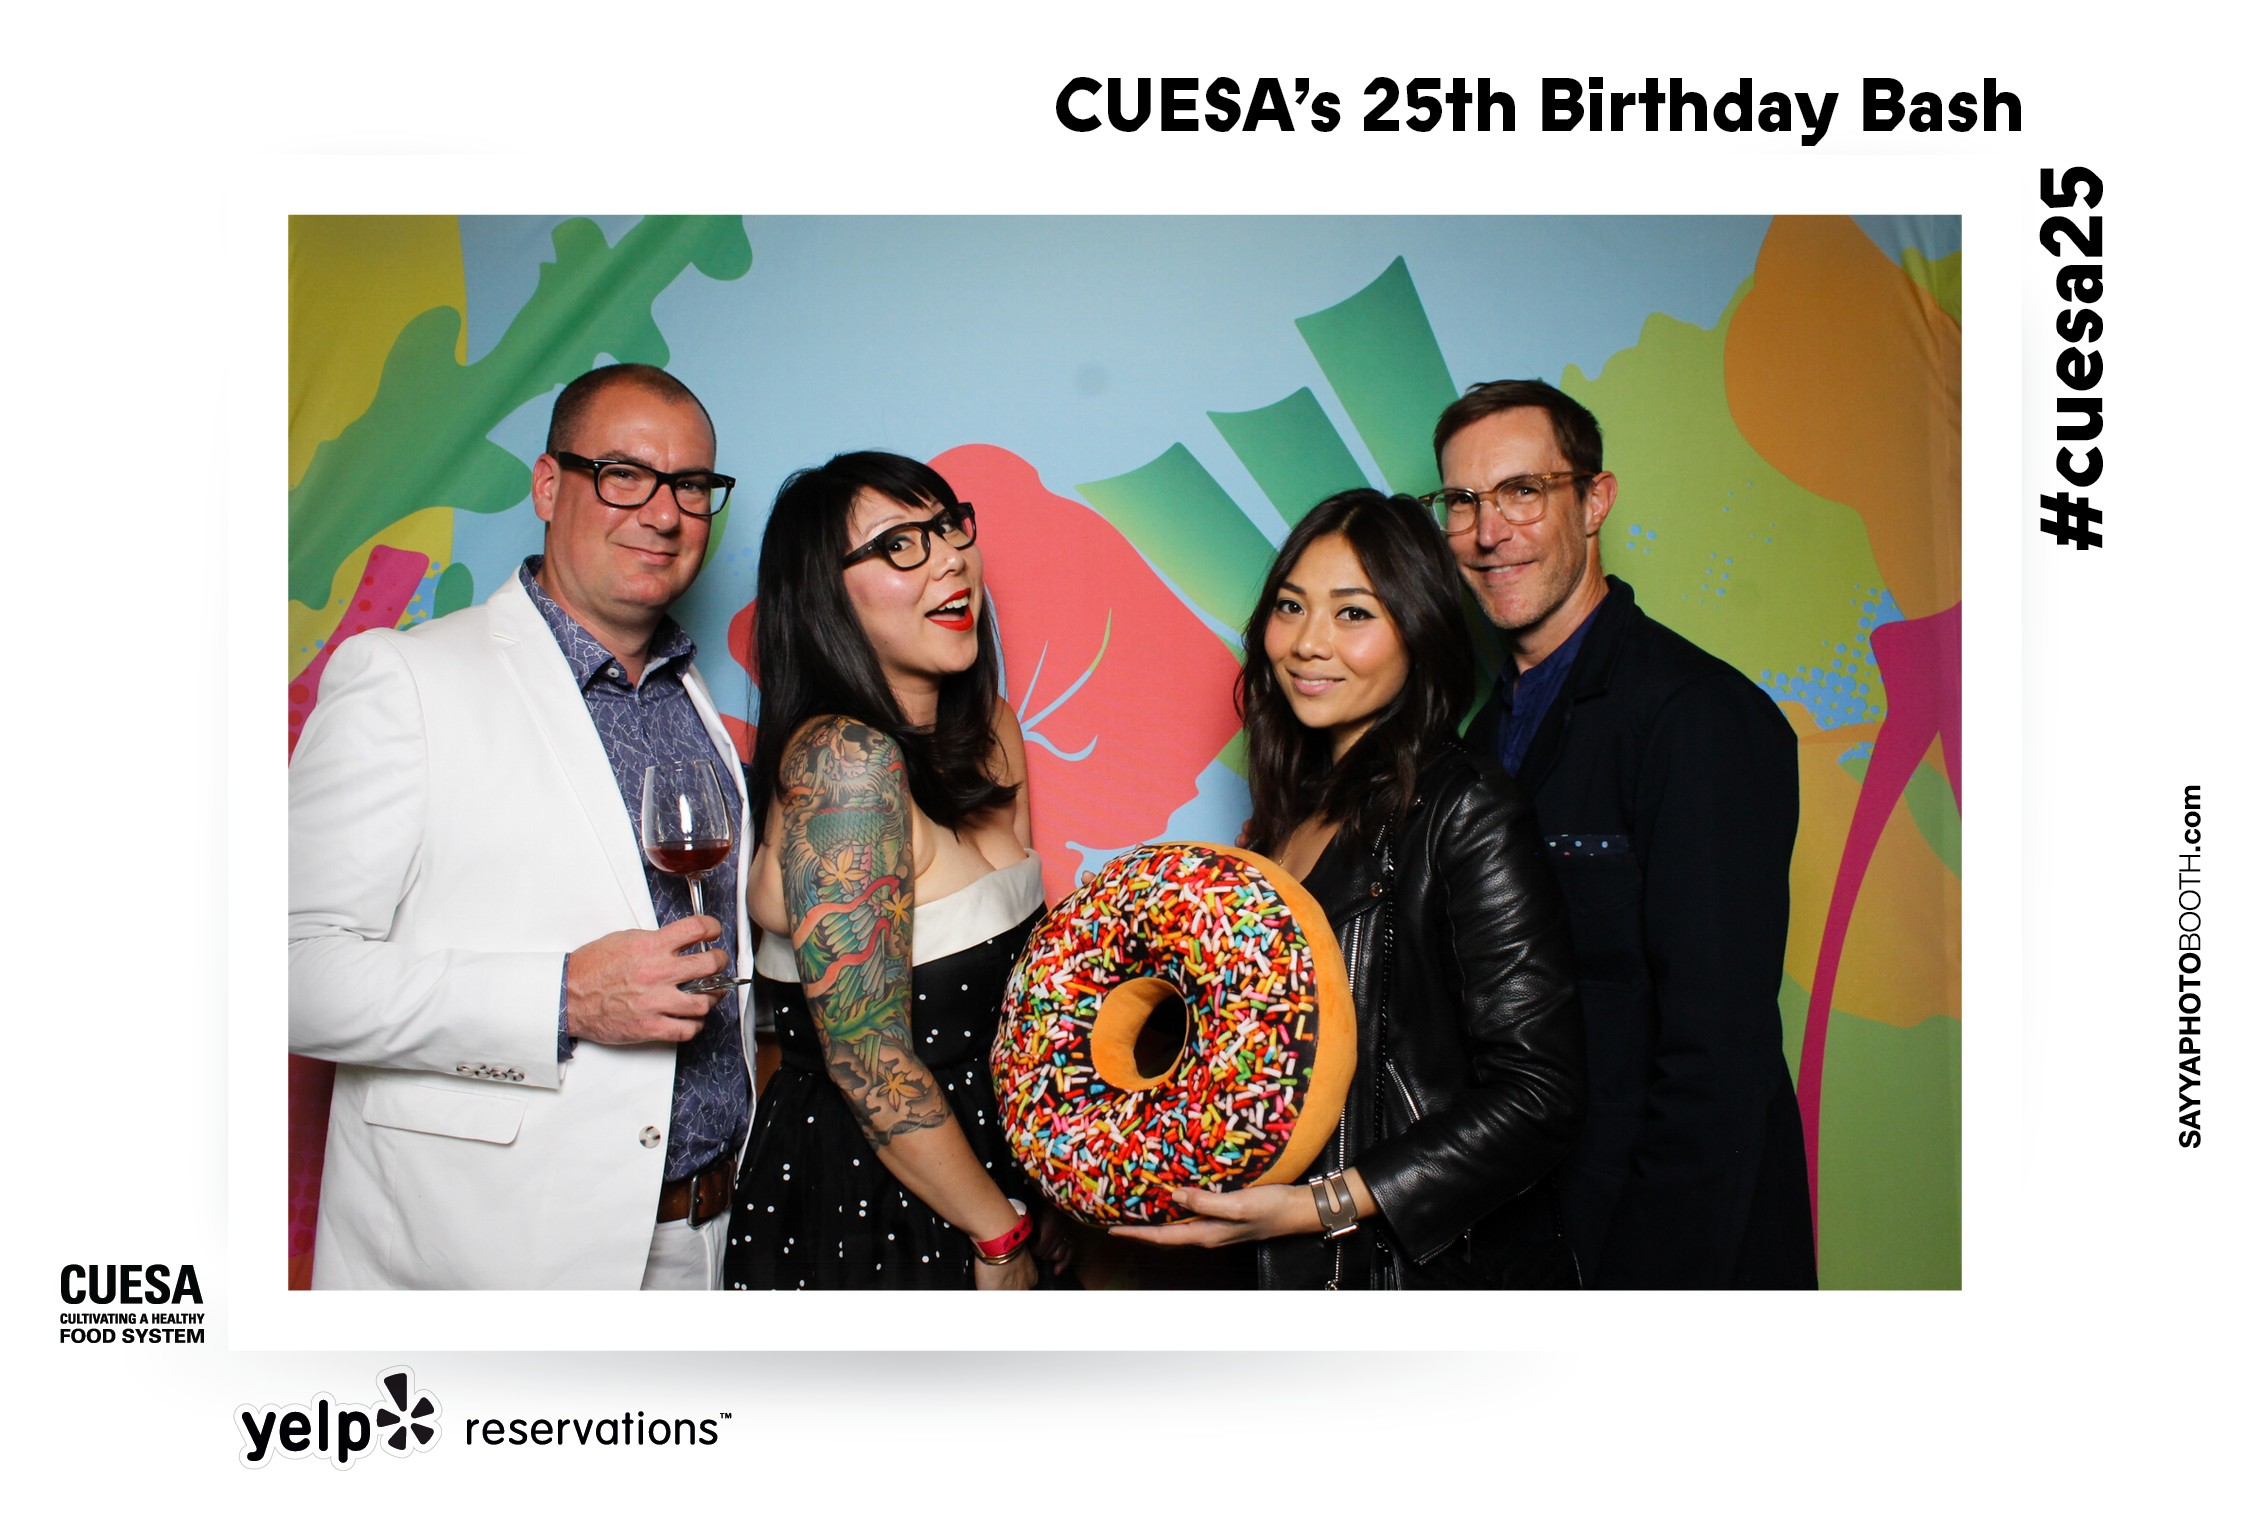 CUESA's 25th Birthday Bash